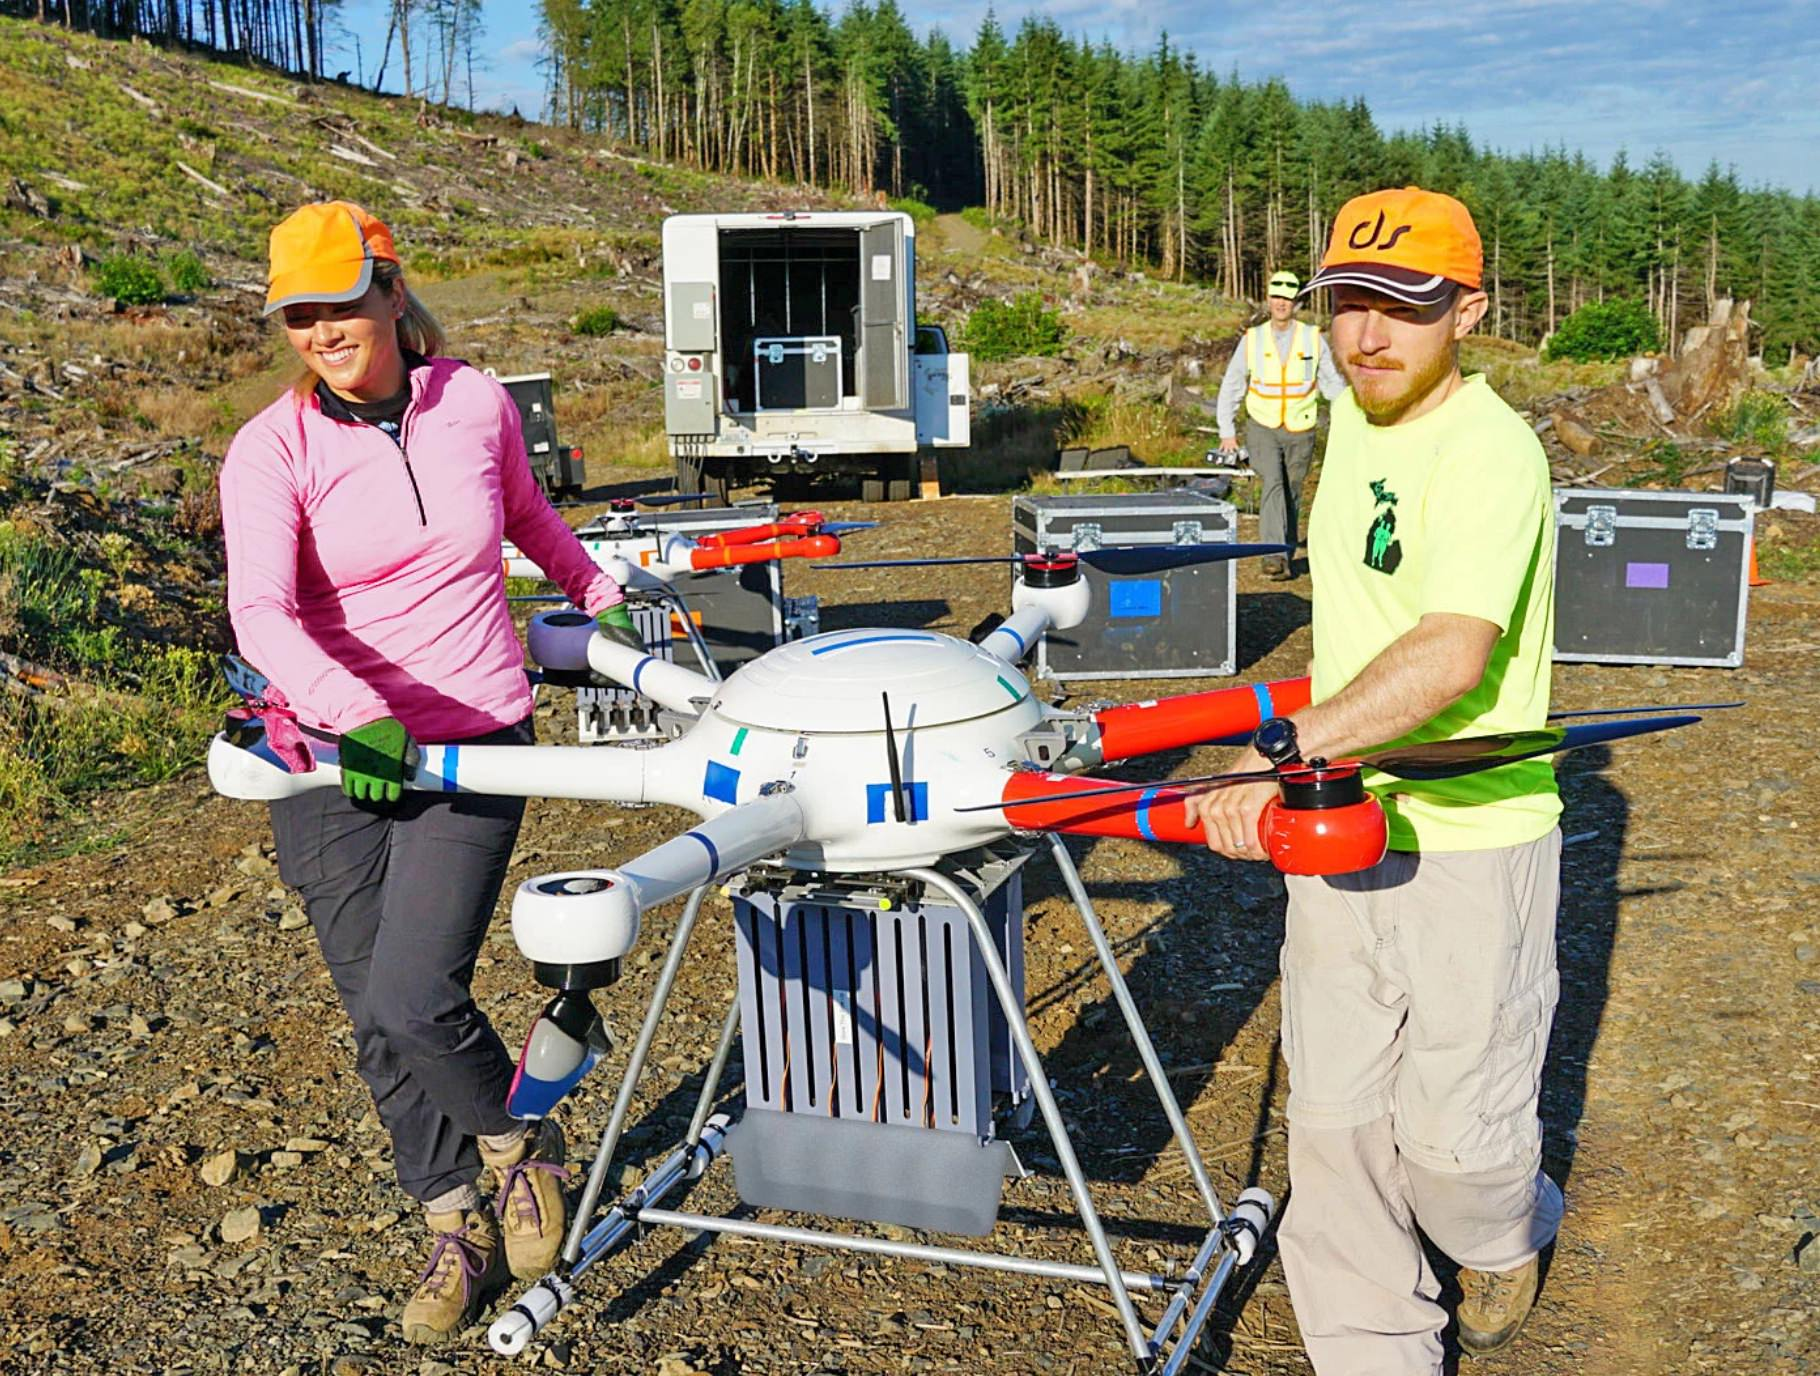 DroneSeed first in U.S to get FAA approval for post-wildfire reforestation